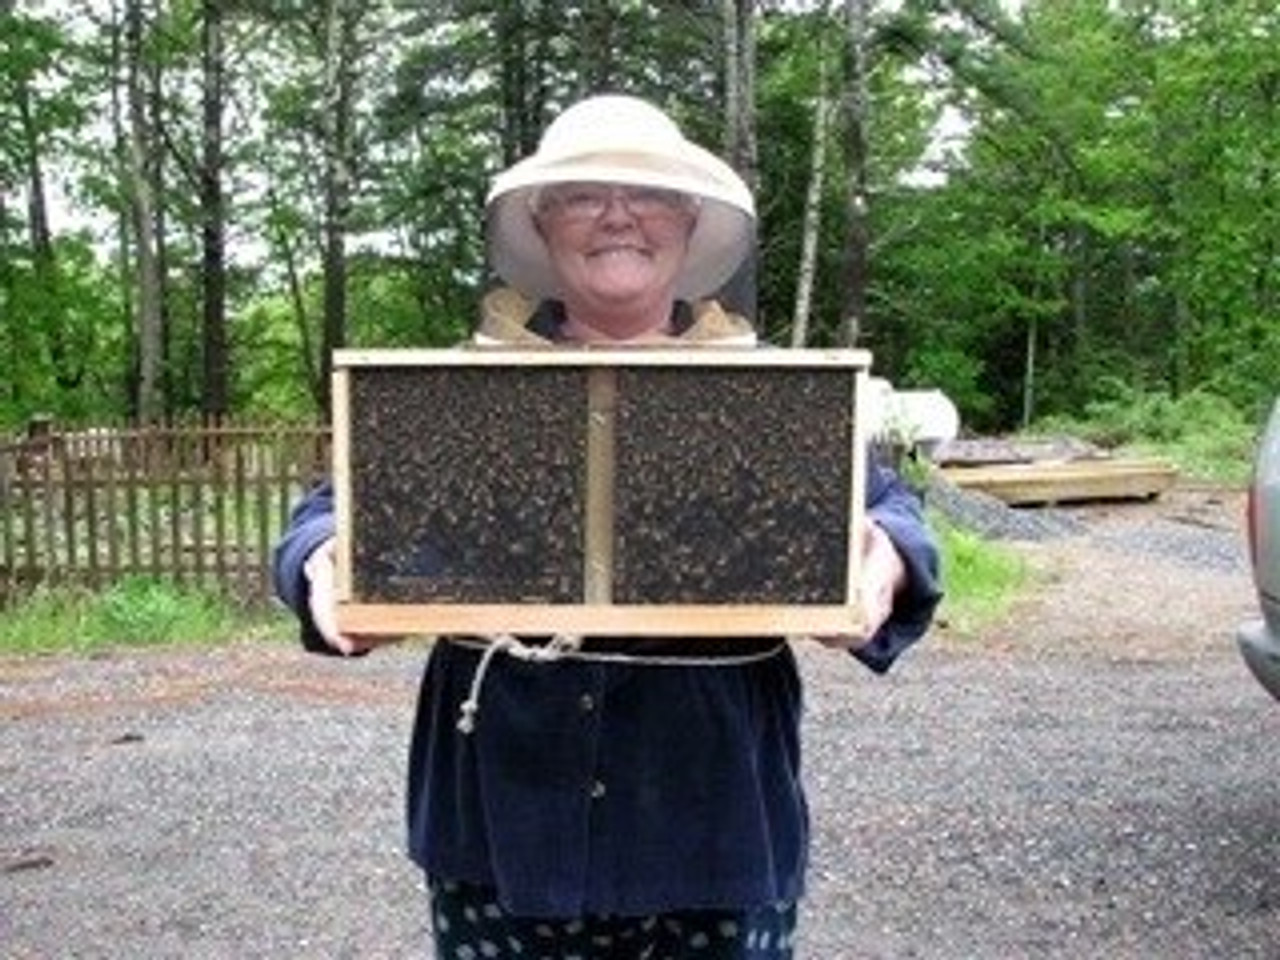 Another happy customer with her beautiful package of honey bees